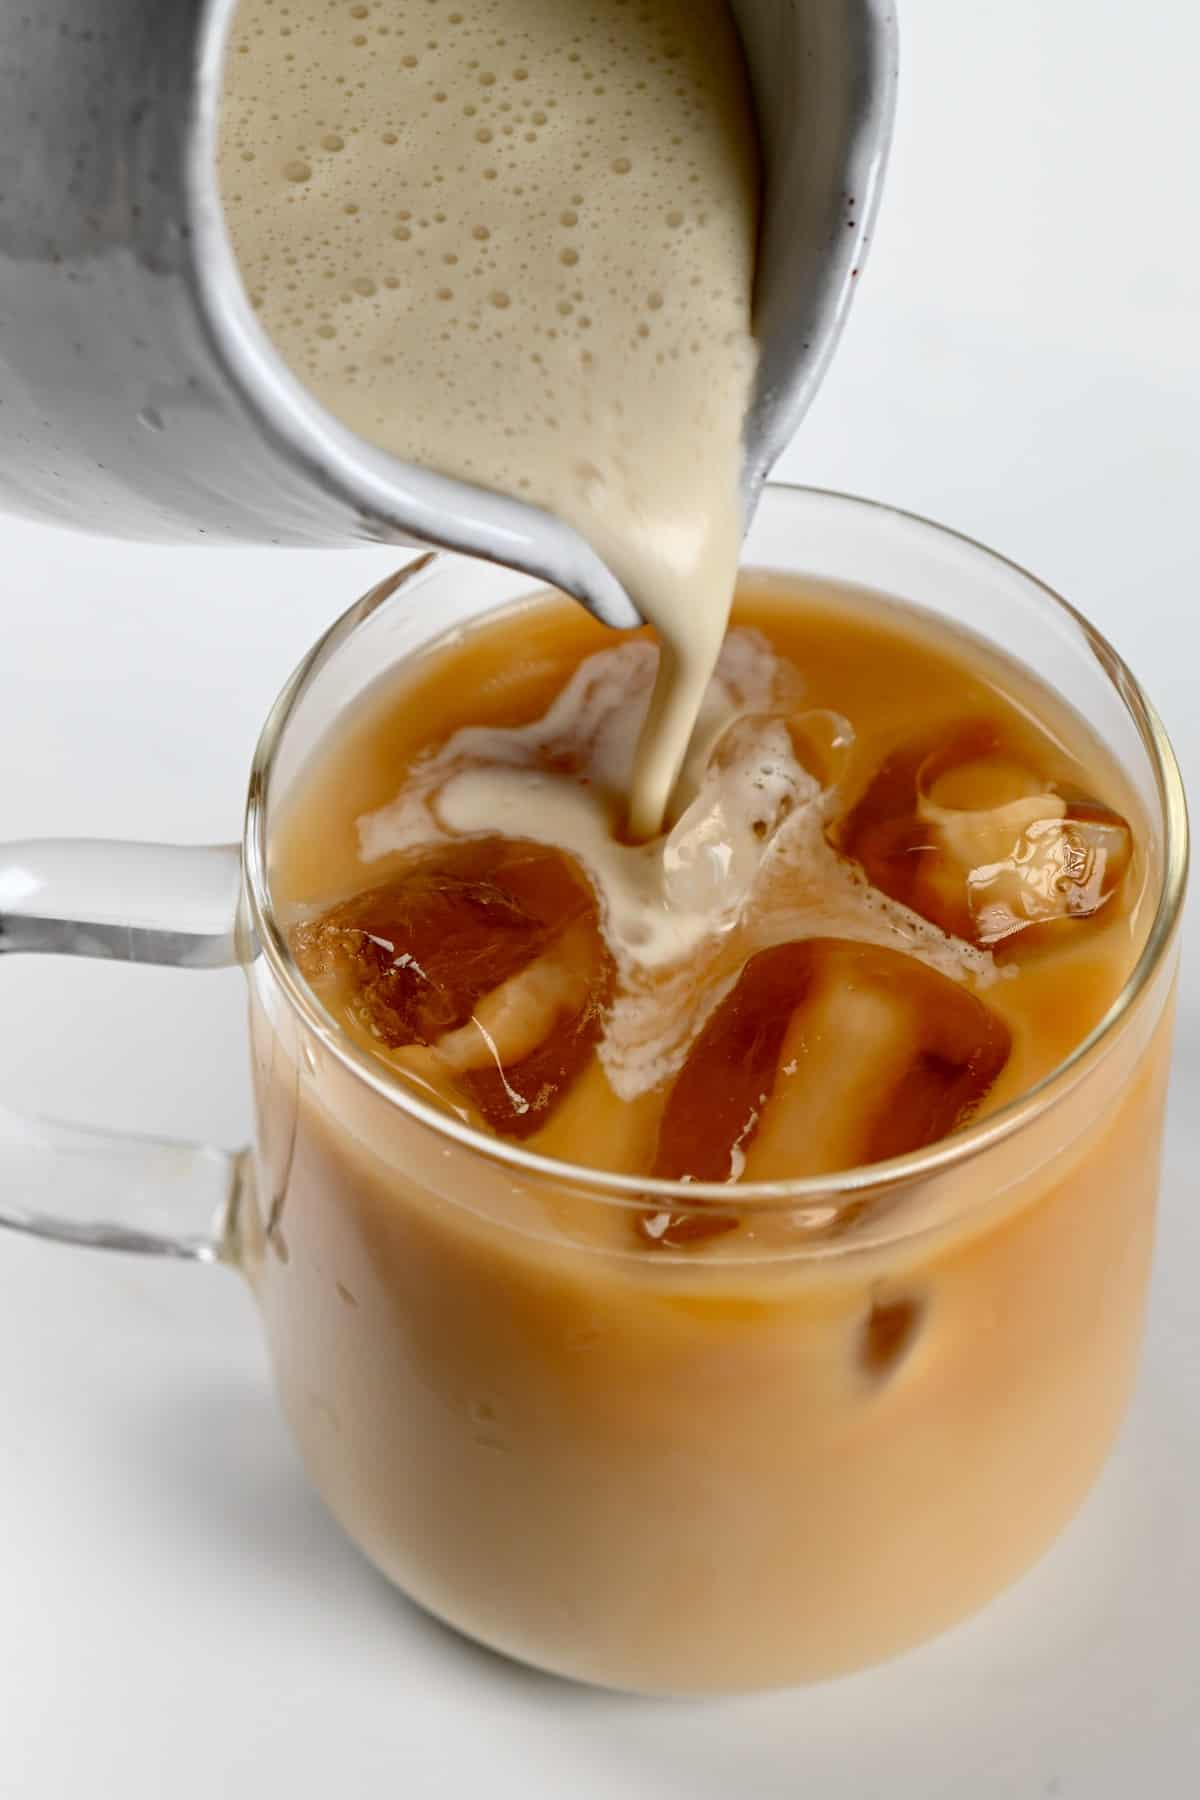 Pouring cream into an iced latte